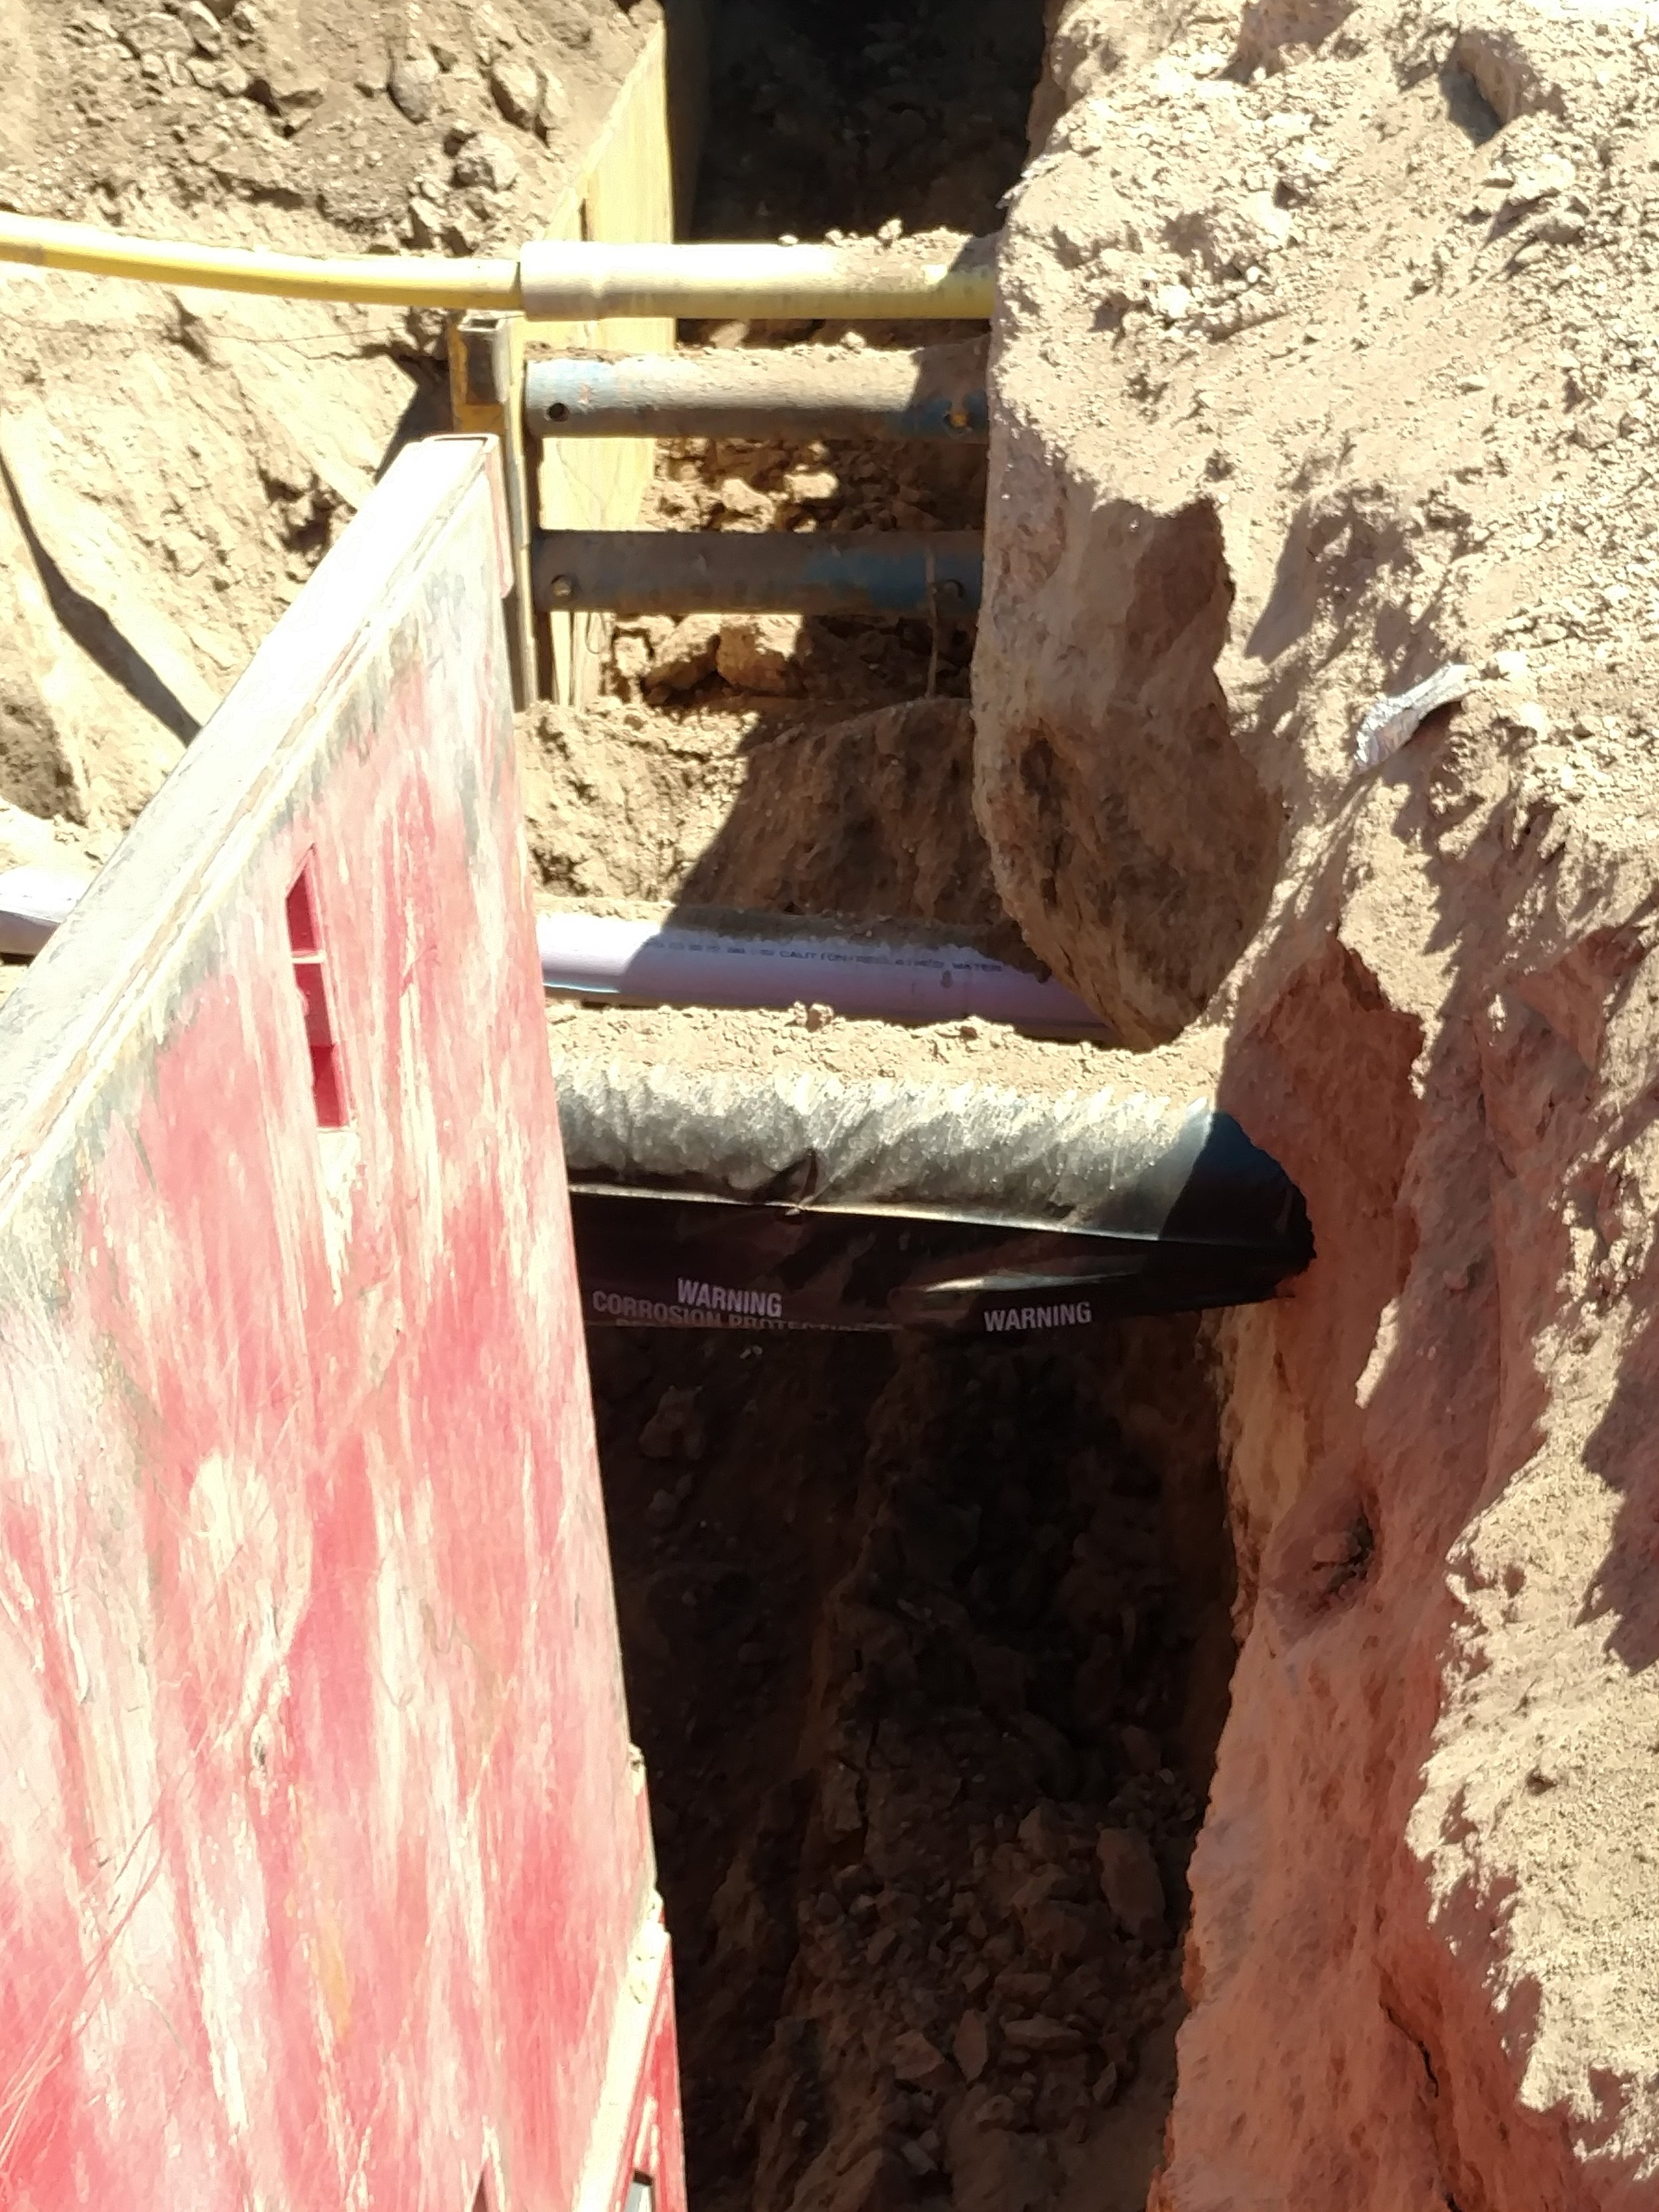 Crossing the sewer line under existing utilities